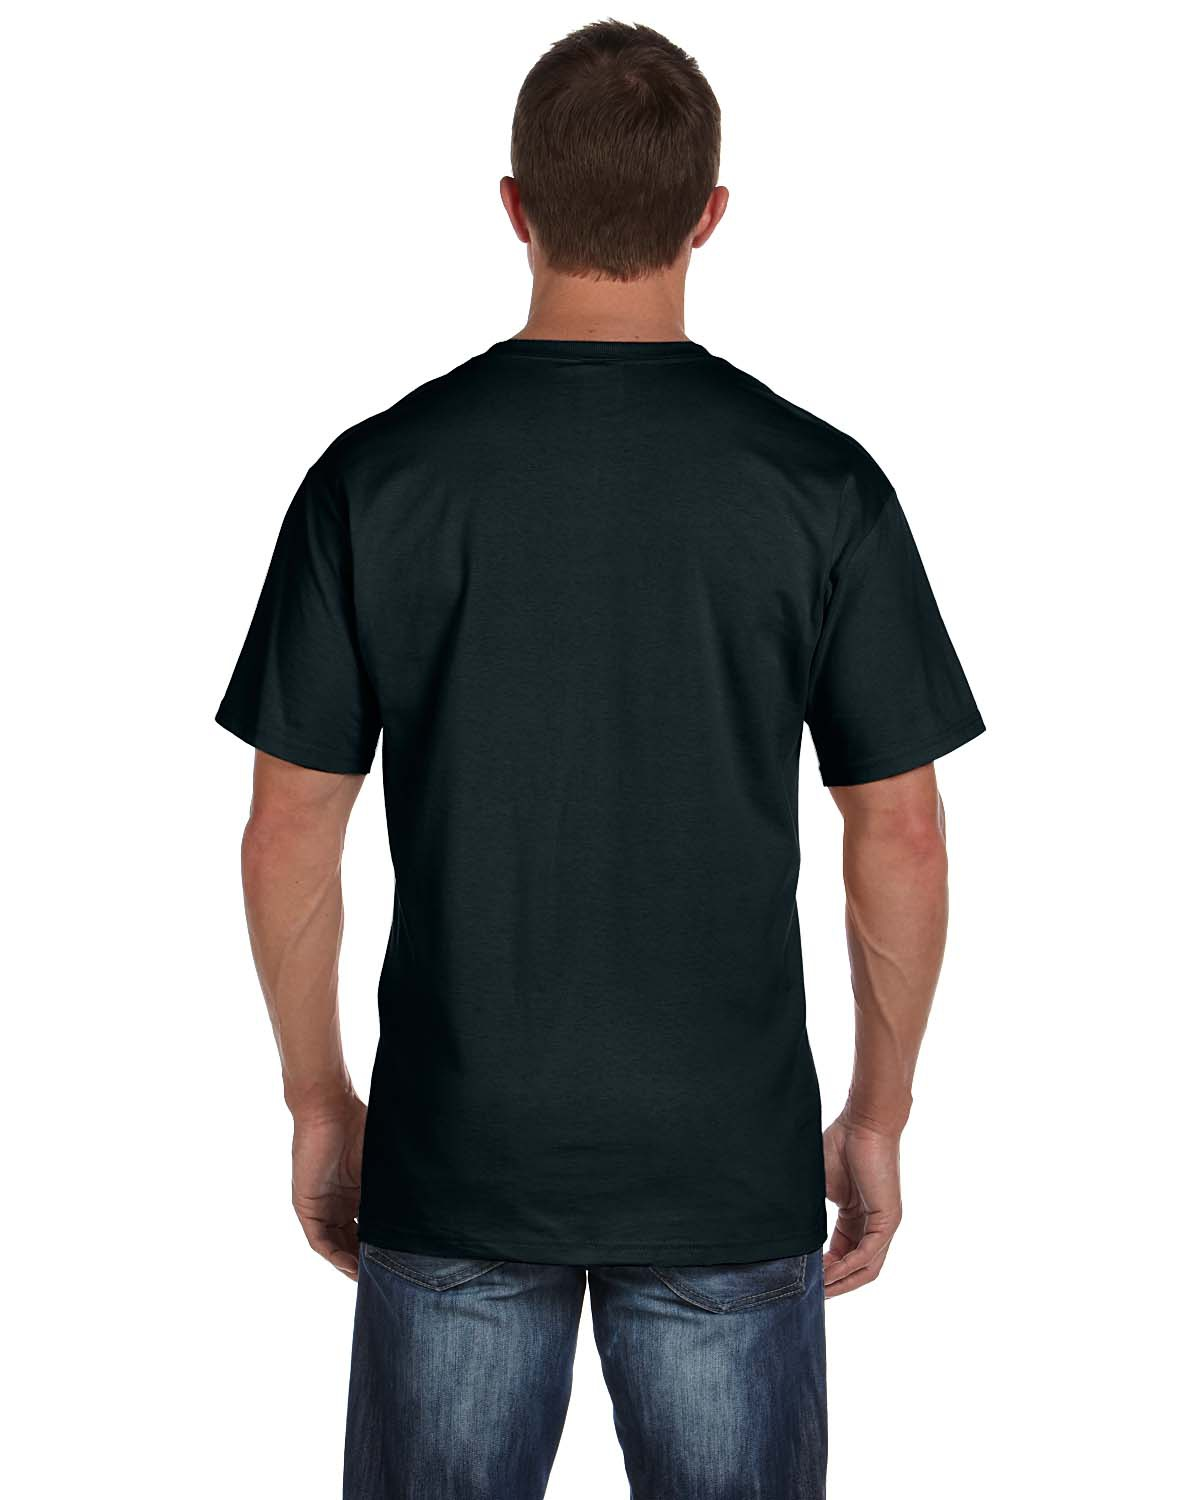 'Fruit of the Loom 3931P Adult HD Cotton Pocket T-Shirt'